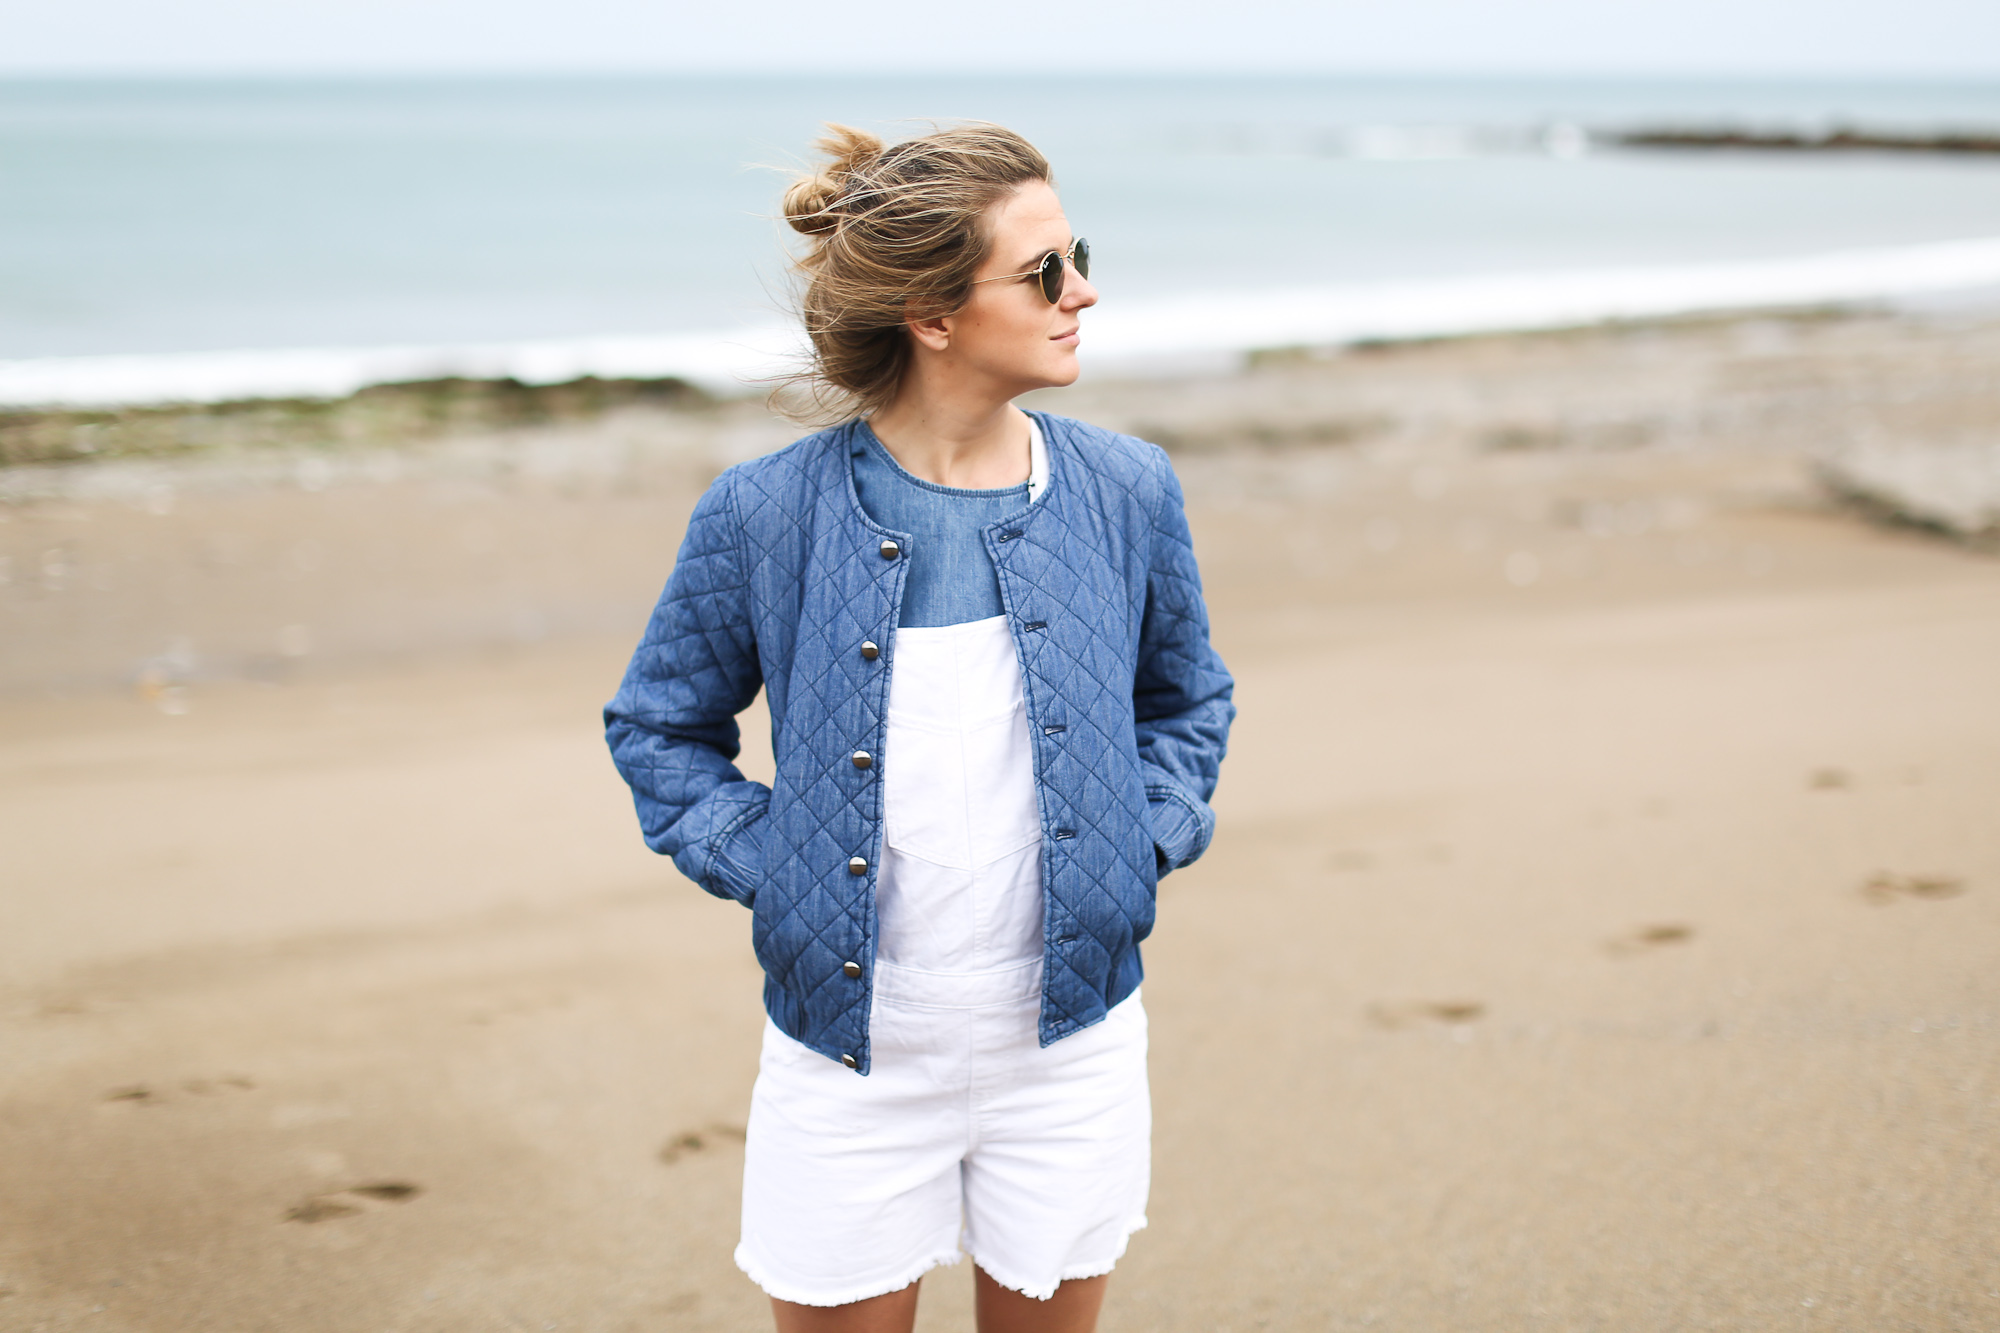 Clochet_streetstyle_blanco_denim_gallery_outfit_onlyforfans-9